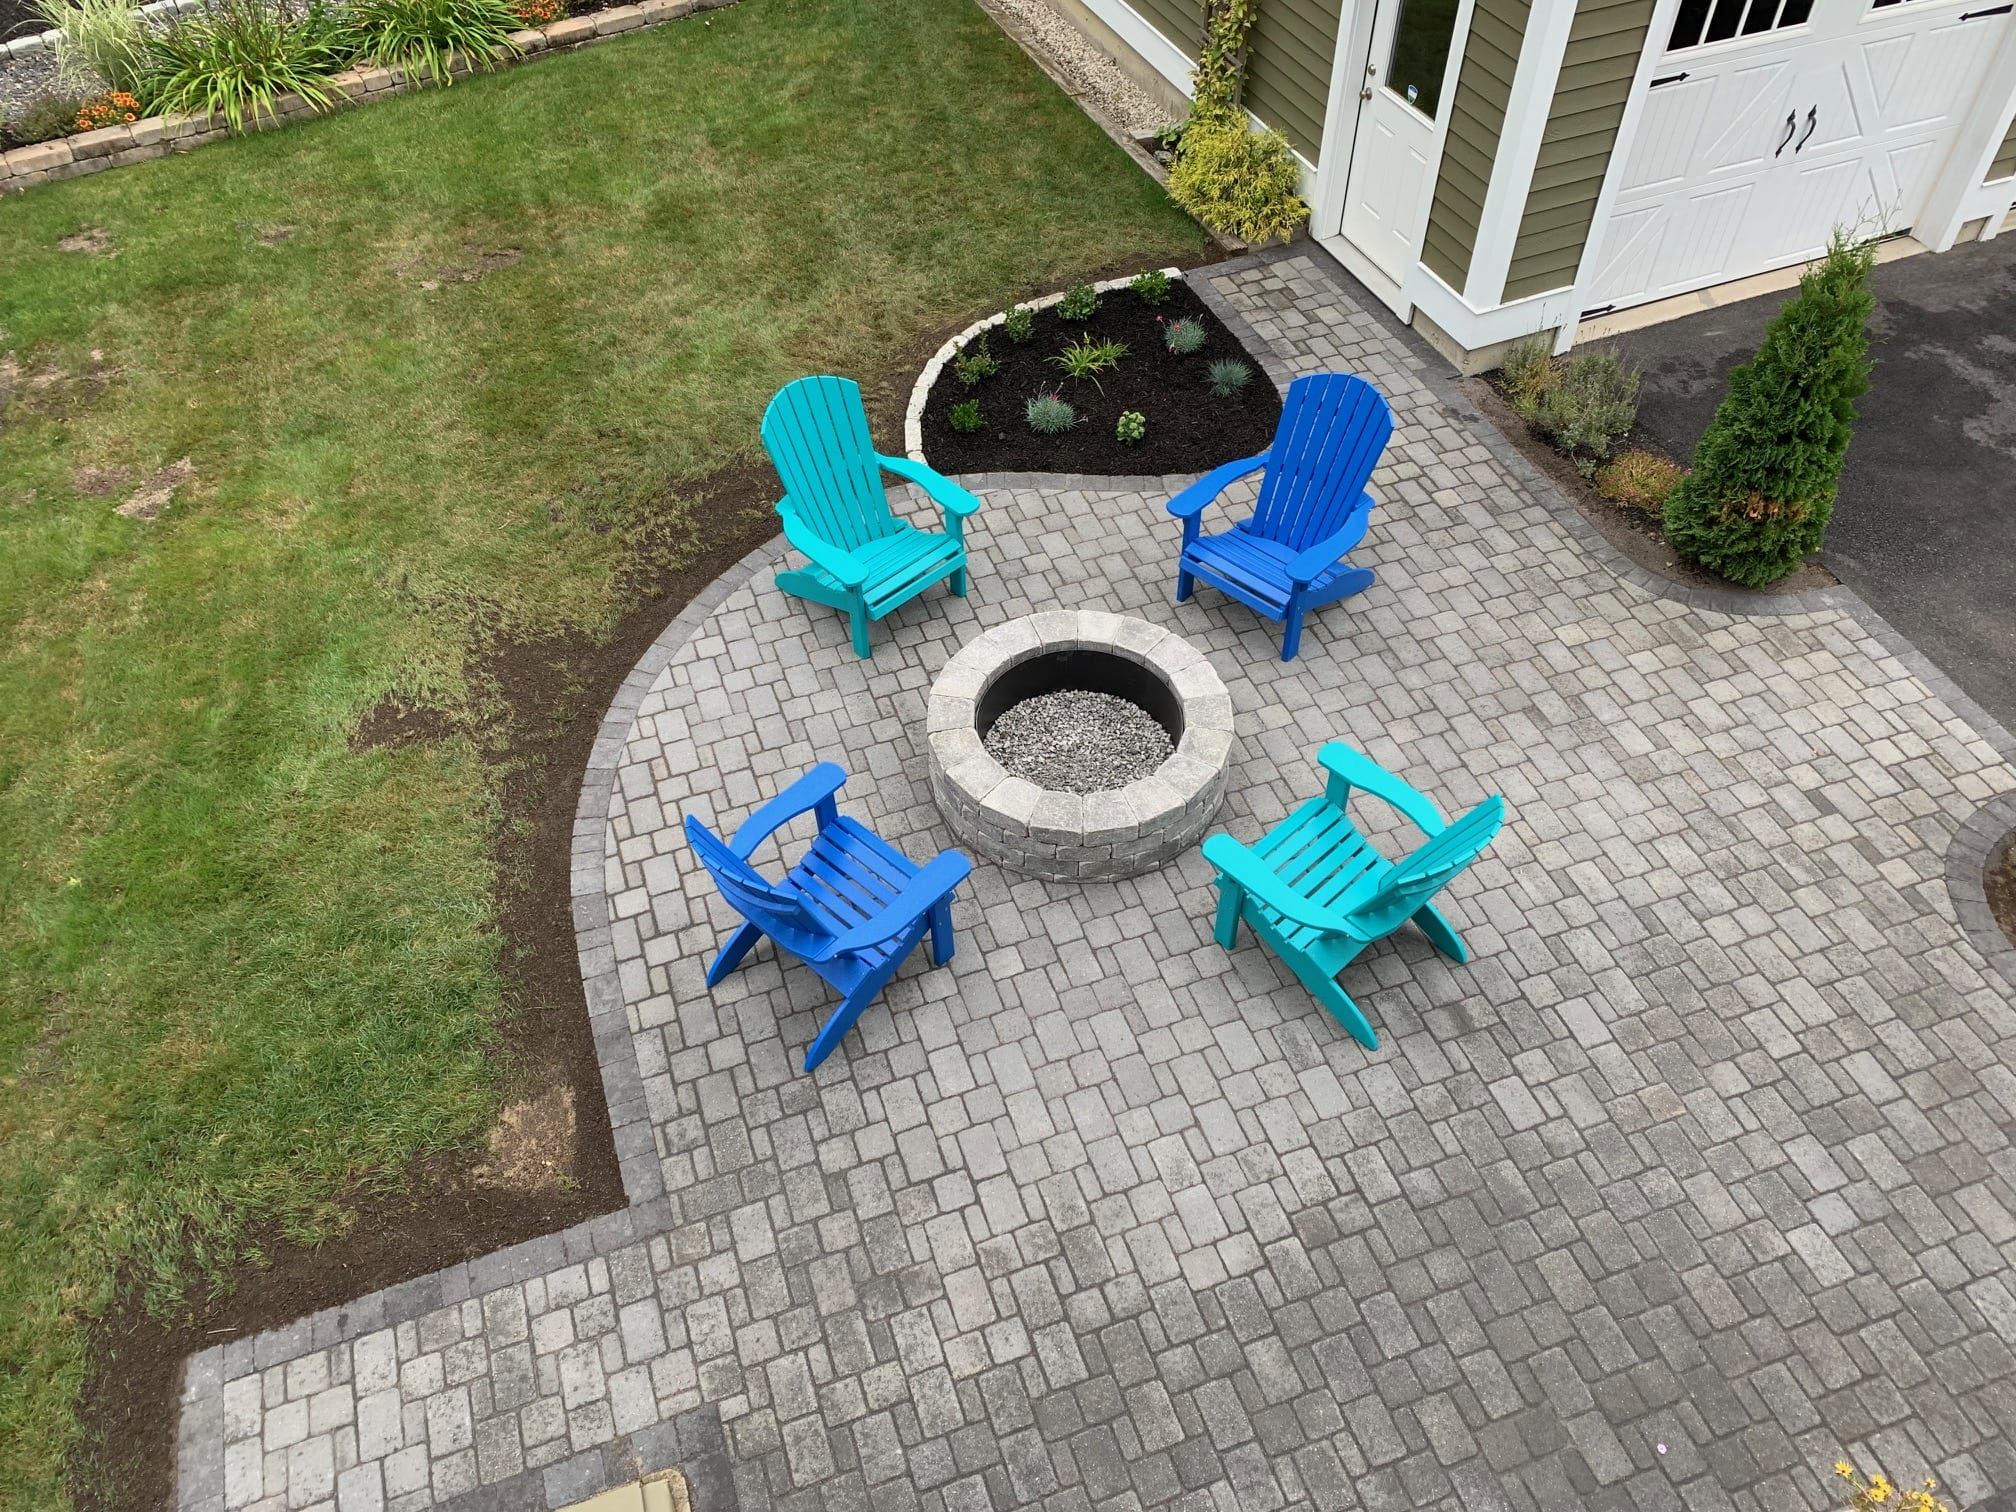 Stone Patio and Fireplace with Adirondack chairs